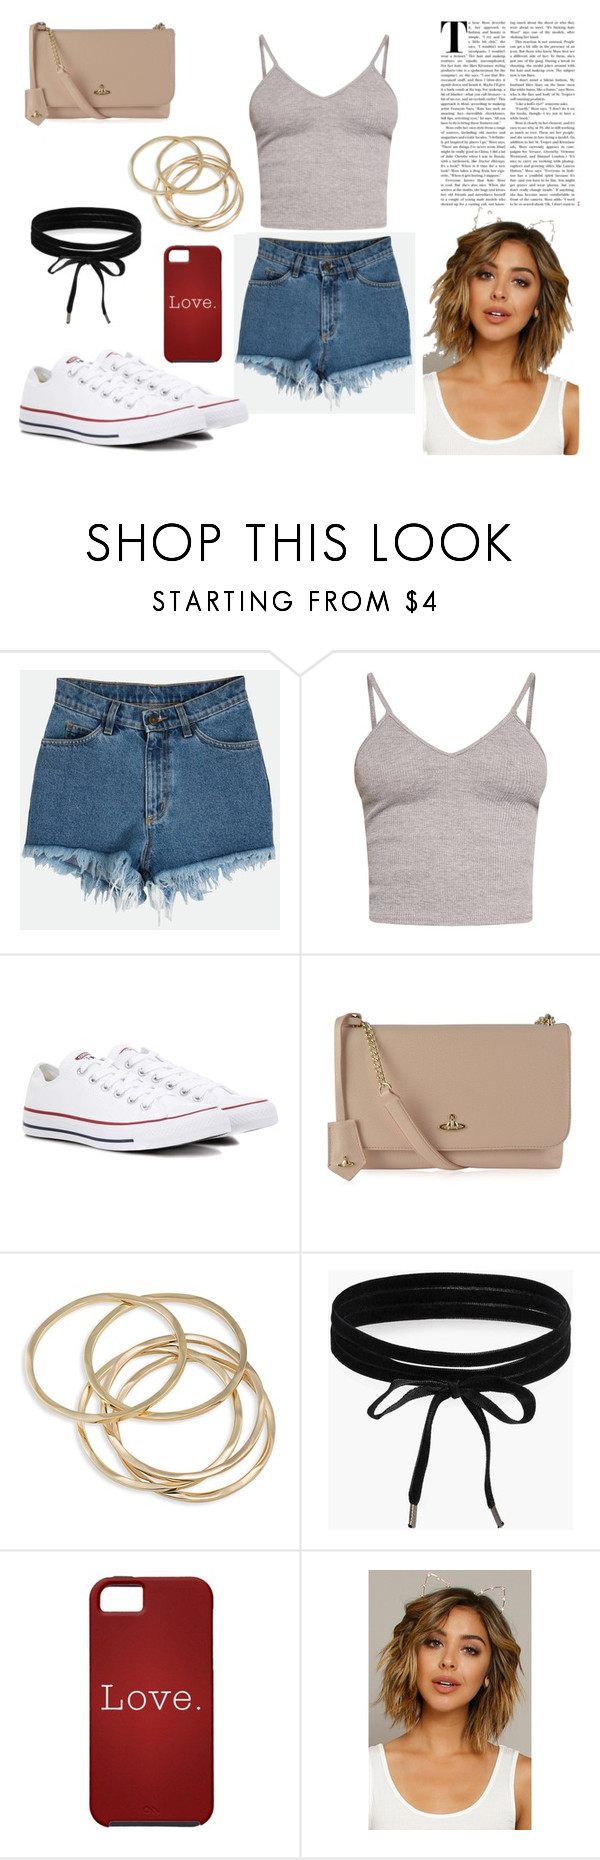 """""""Casual Summer Outfit"""" by lollipollipop on Polyvore featuring BasicGrey, Converse, Vivienne Westwood, ABS by Allen Schwartz, Boohoo, Summer, casual and outfit"""